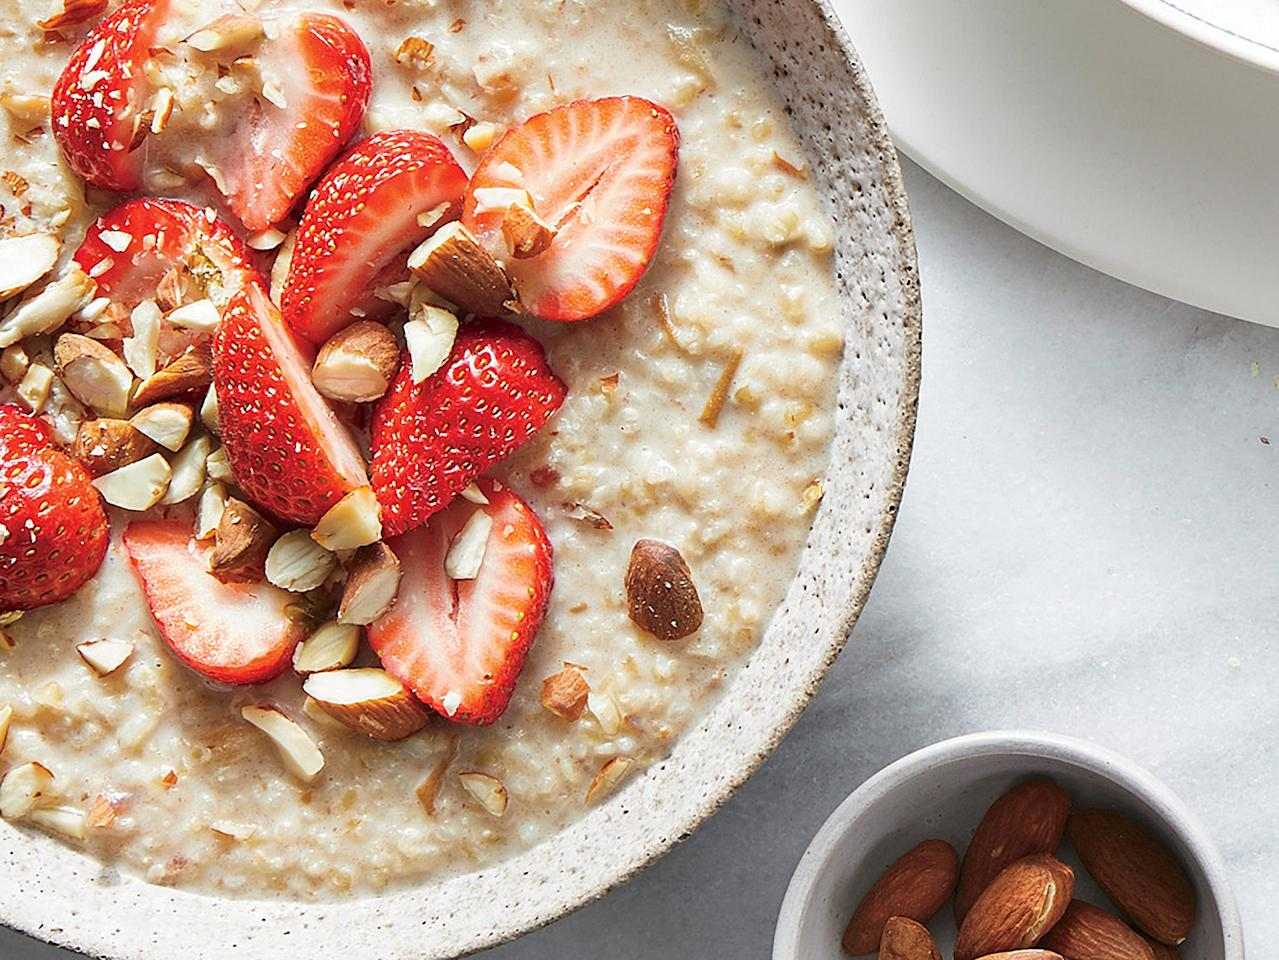 "<p>While you might not think of turning bulgur into porridge, it's a delicious whole-grain breakfast with a texture similar to instant oatmeal. Mashed dates naturally sweeten and enrich almond milk for a creamy, satisfying bowl. You can <a href=""https://www.cookinglight.com/recipes/simply-seasoned-bulgur"" target=""_blank"">make the porridge ahead</a> and simply reheat briefly before serving; add the berries and nuts after heating the bulgur.</p> <p><a href=""https://www.myrecipes.com/recipe/strawberry-bulgur-bowl"">Strawberry Bulgur Bowl Recipe</a></p>"